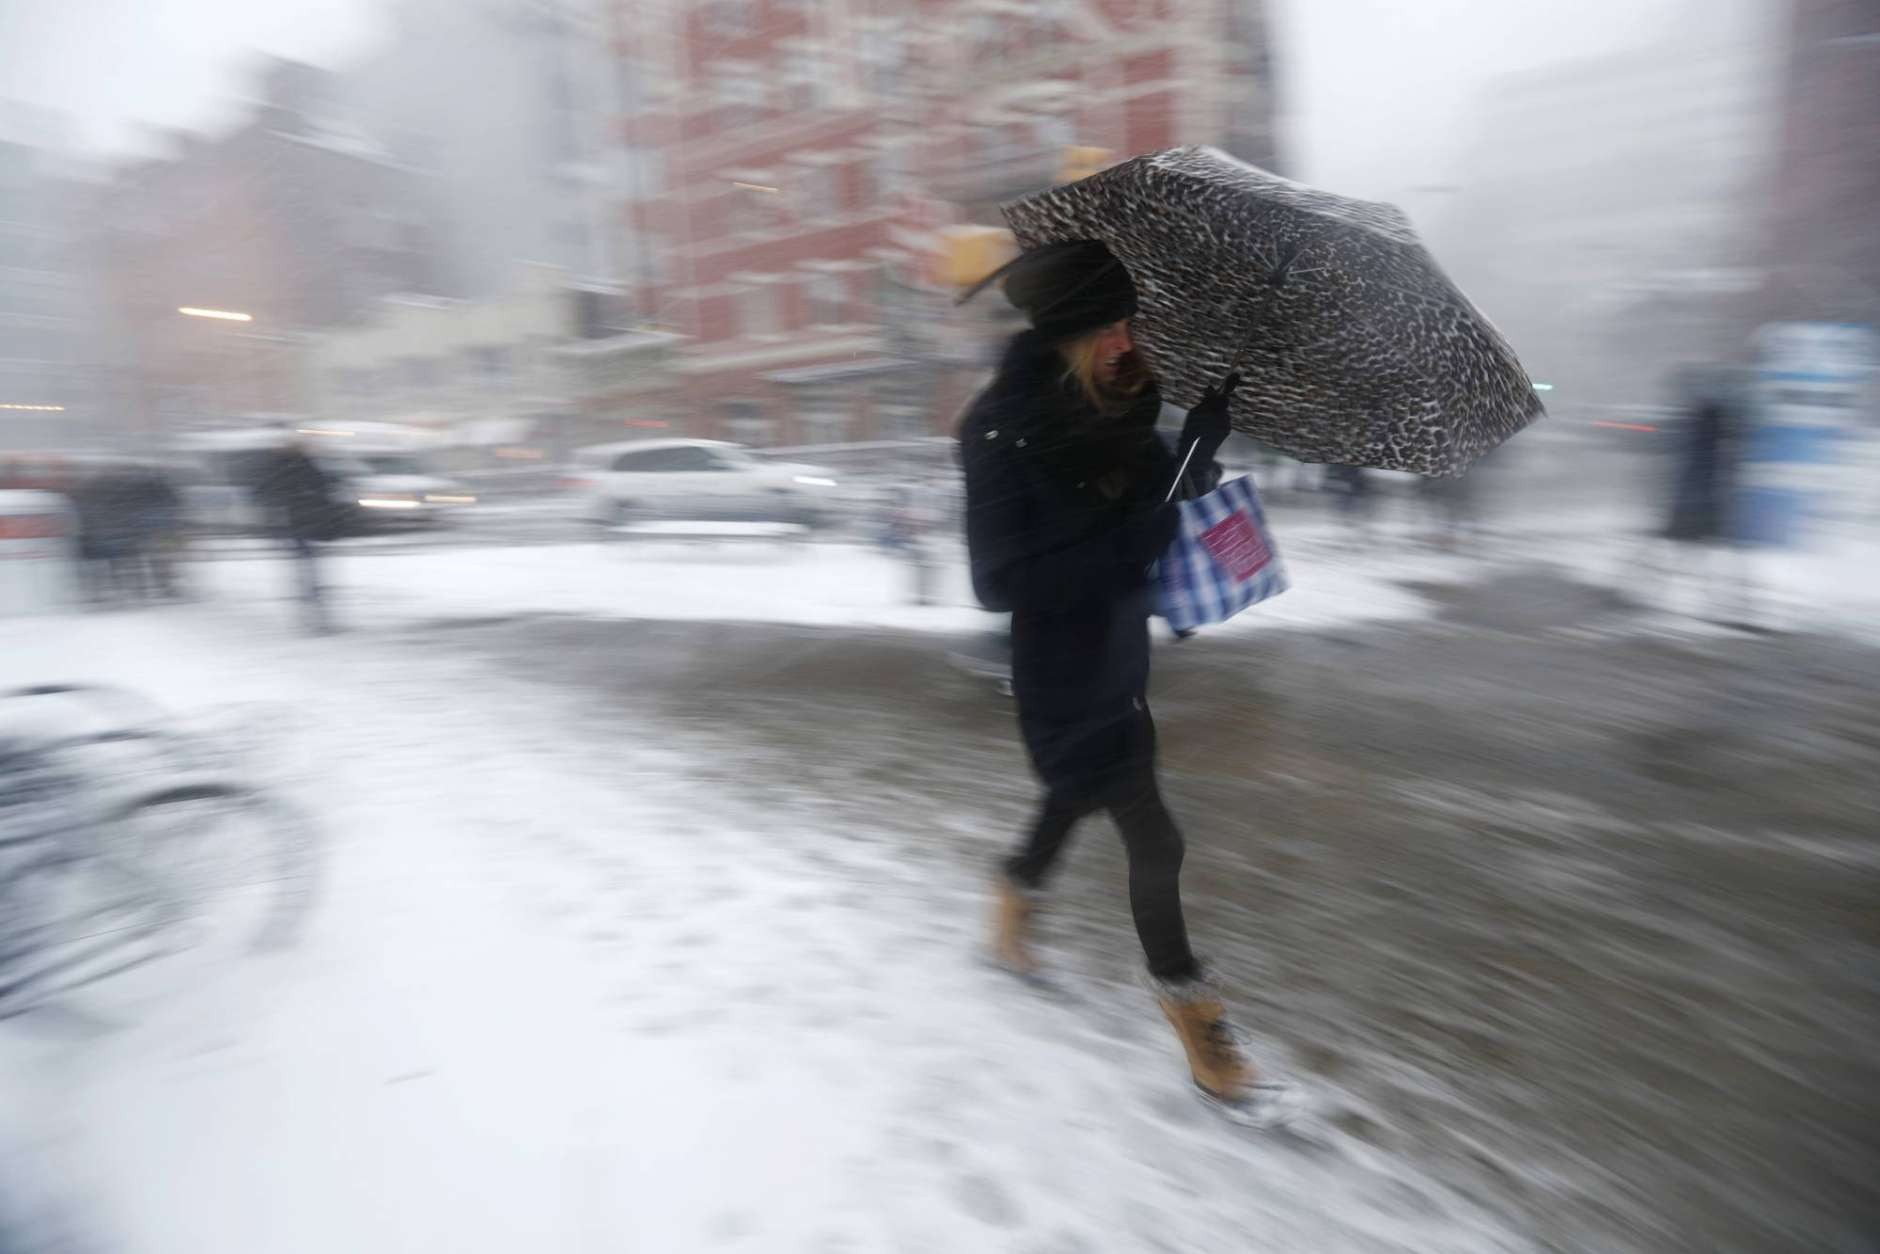 A woman uses an umbrella to shield herself from falling snow while approaching the Hoboken PATH train terminal, Thursday, Feb. 9, 2017, in Hoboken, N.J. A powerful, fast-moving storm swept through the northeastern U.S. Thursday, making for a slippery morning commute and leaving some residents bracing for blizzard conditions. (AP Photo/Julio Cortez)